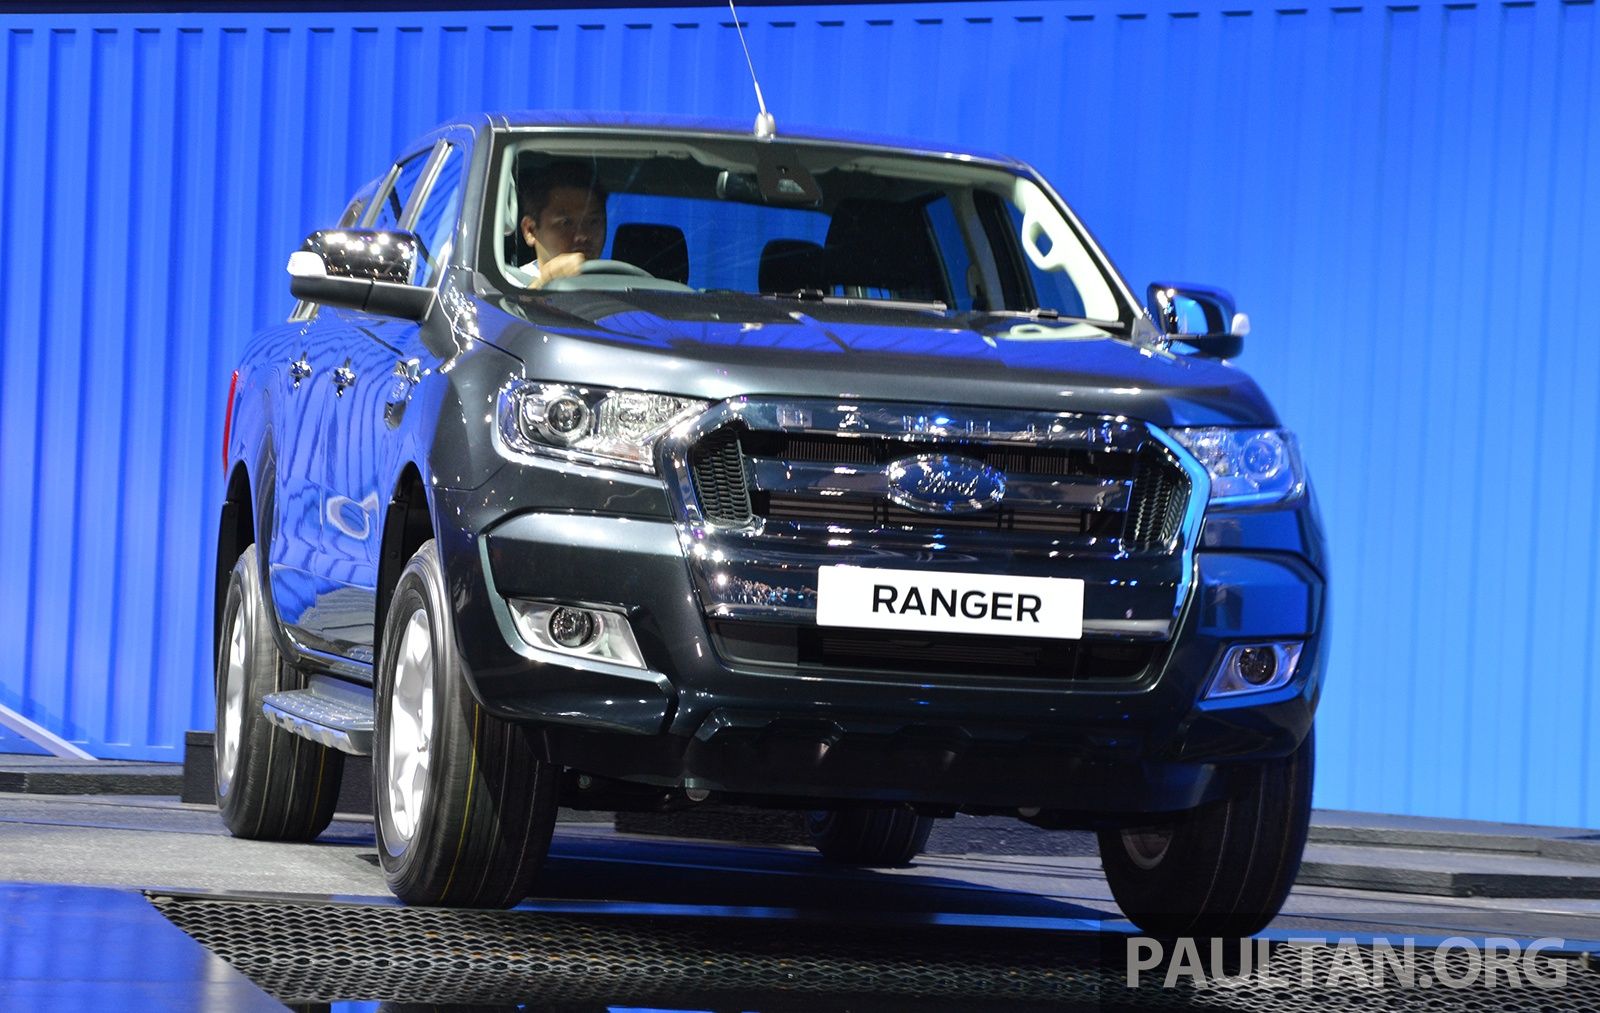 2015 ford ranger makes world debut in thailand paul tan image 320424. Black Bedroom Furniture Sets. Home Design Ideas